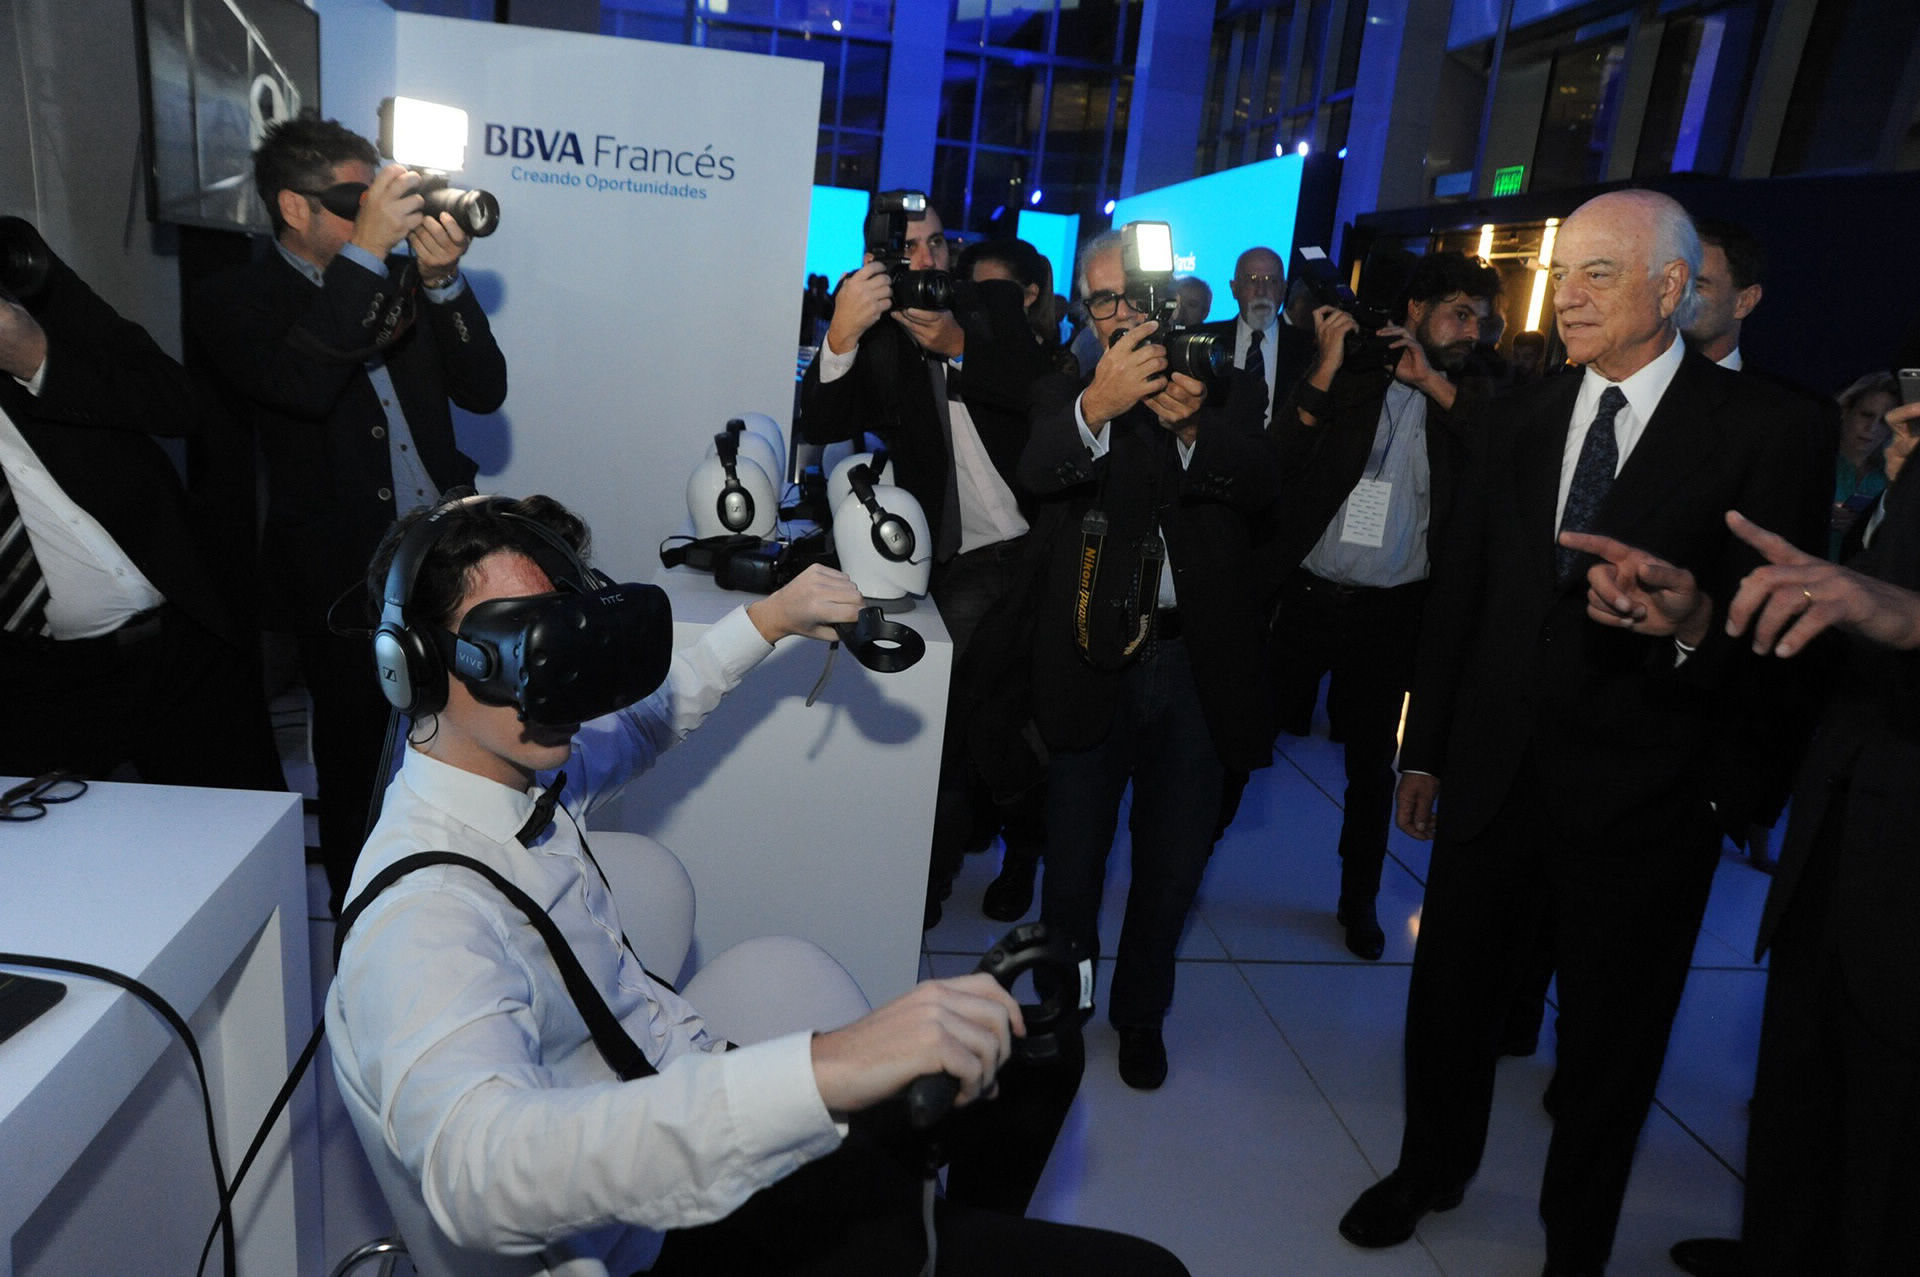 BBVA VR gamification at event